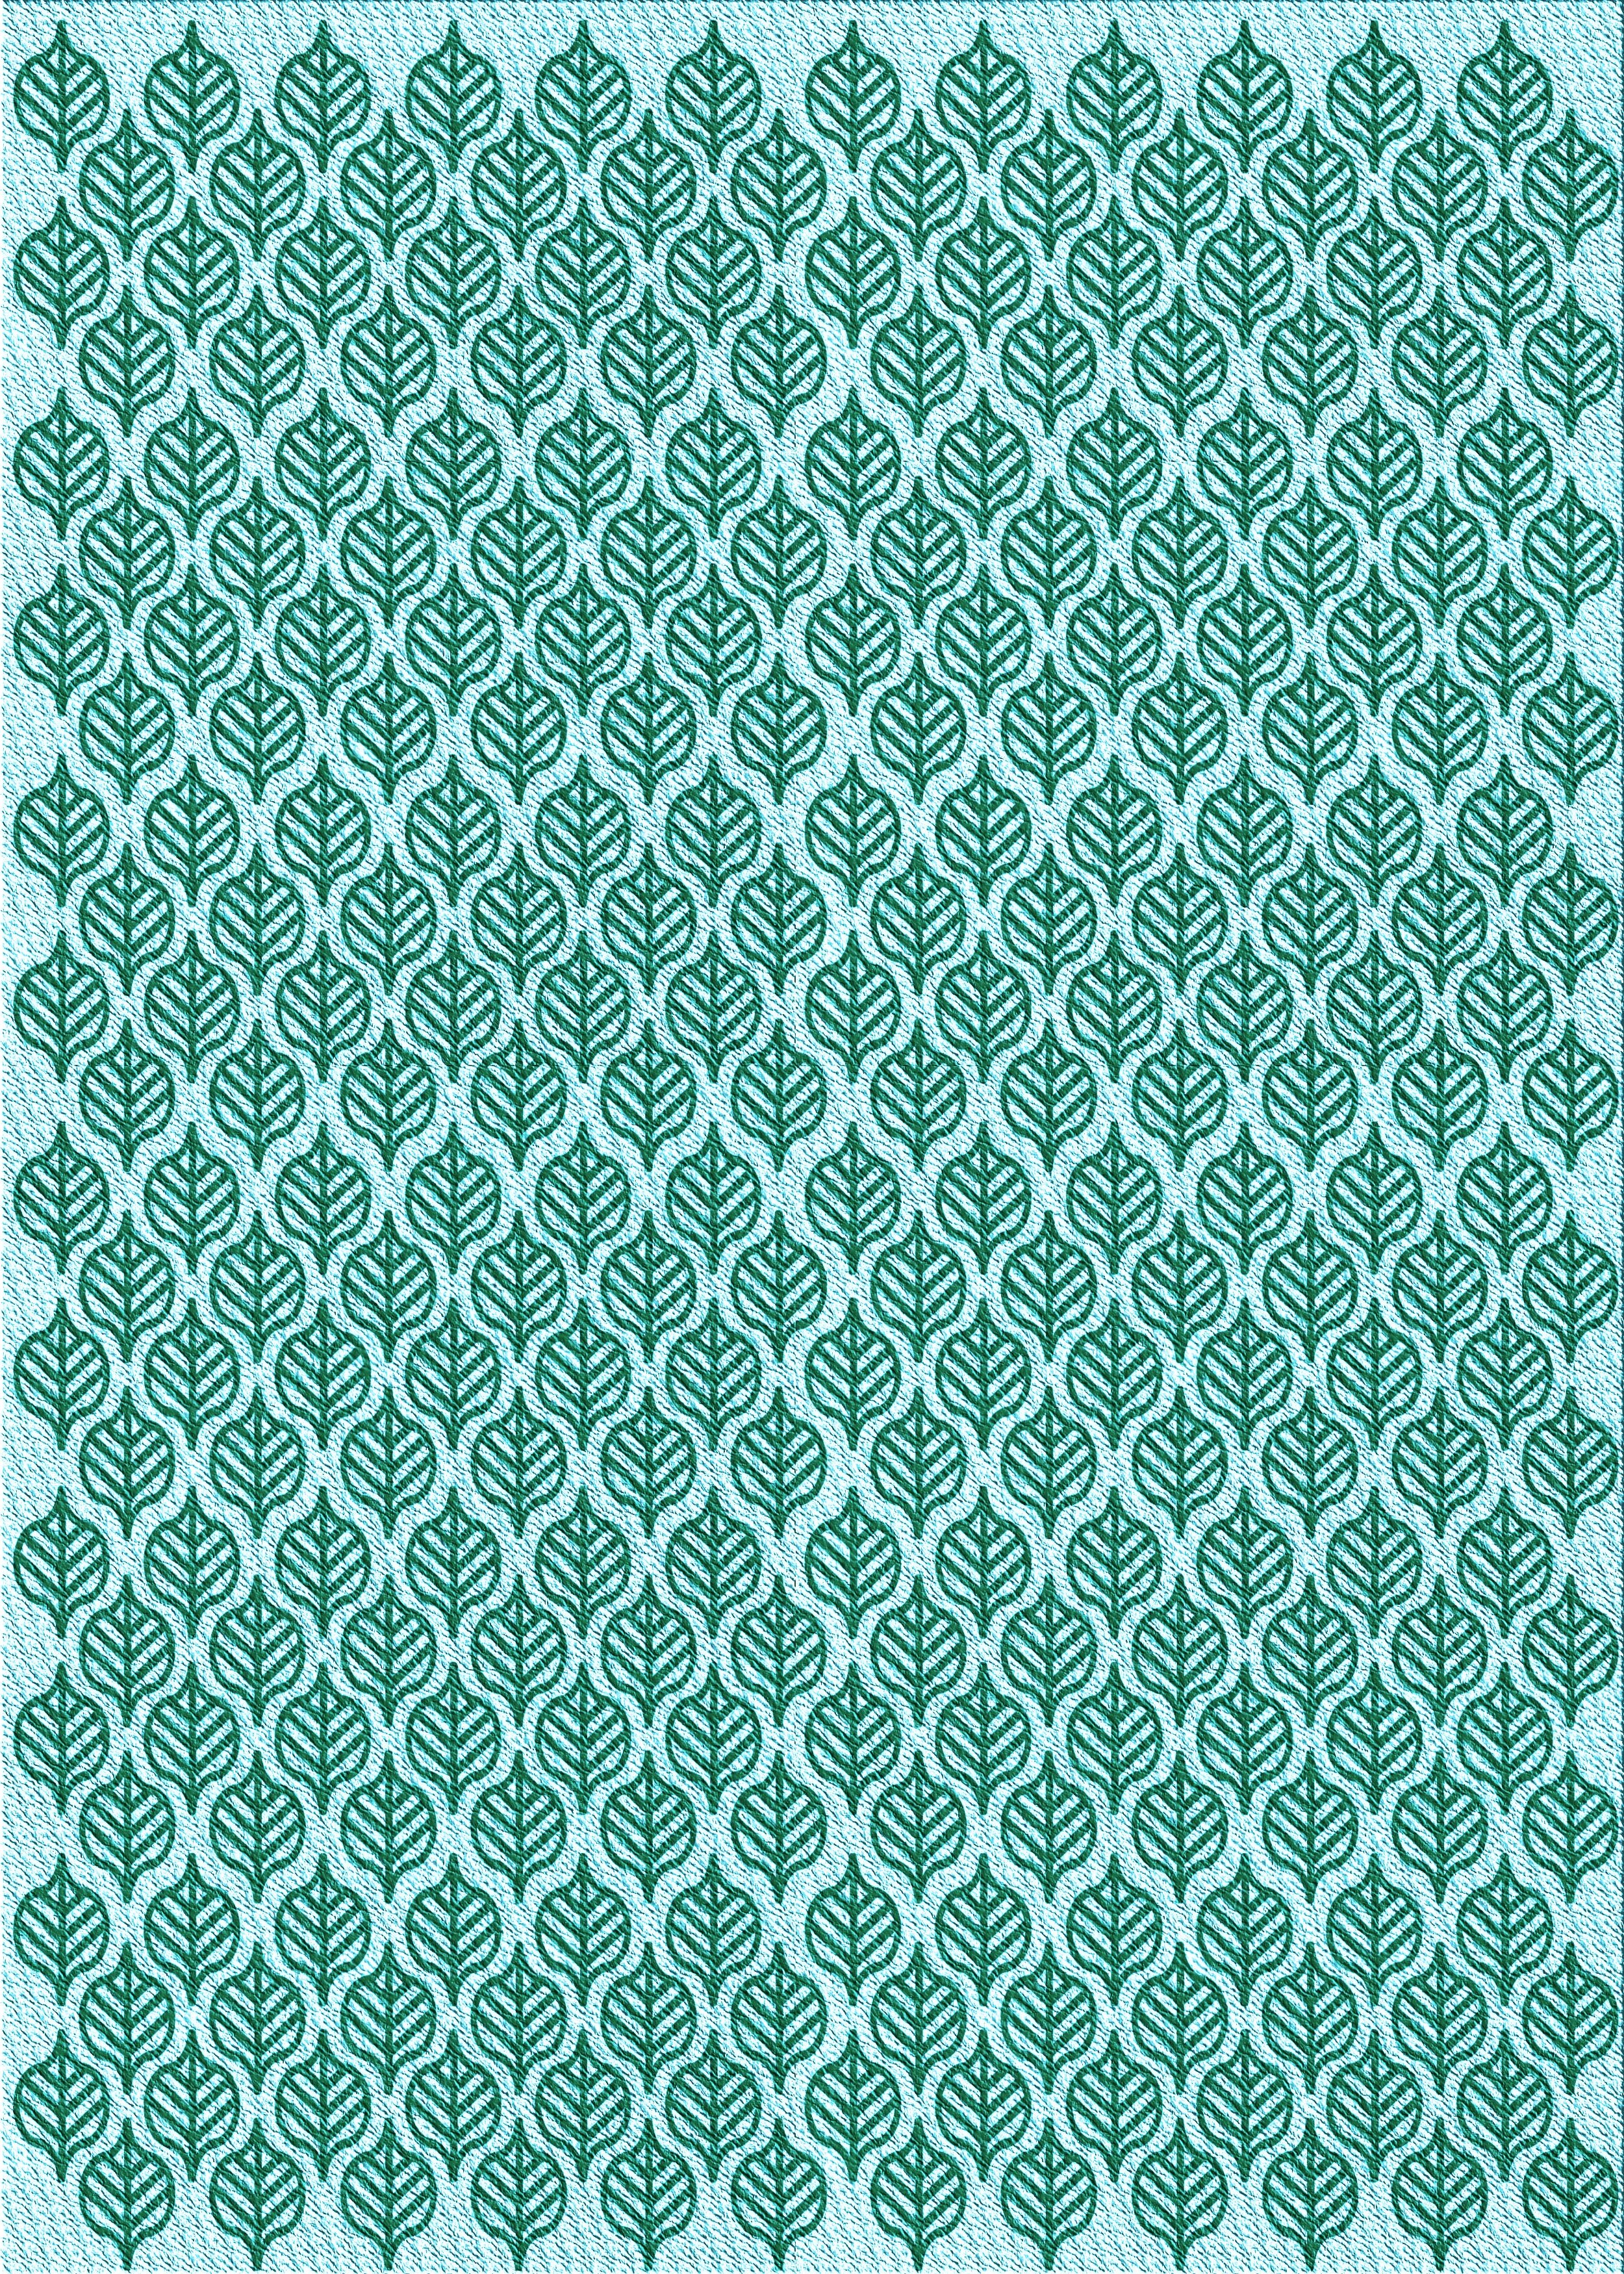 Blue East Urban Home Area Rugs You Ll Love In 2021 Wayfair